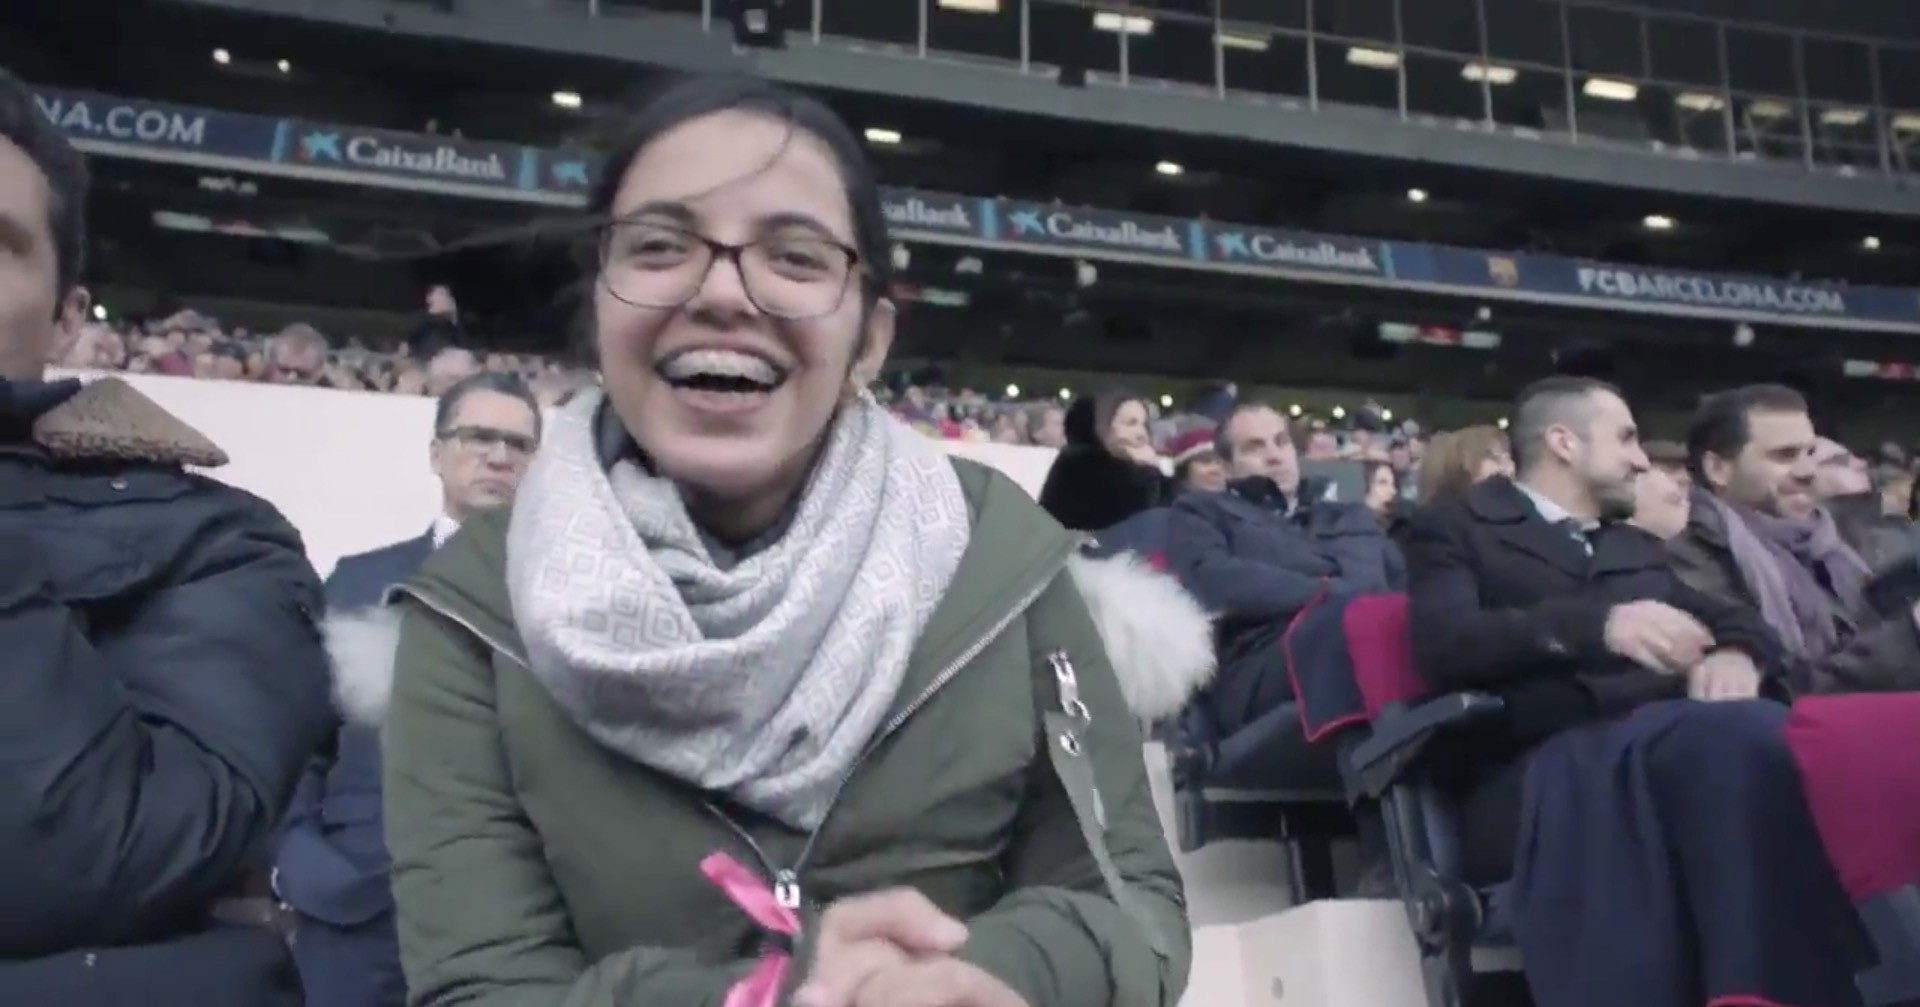 This screengrab from Barcelona's video shows Nujeen Mustafa in Camp Nou stadium